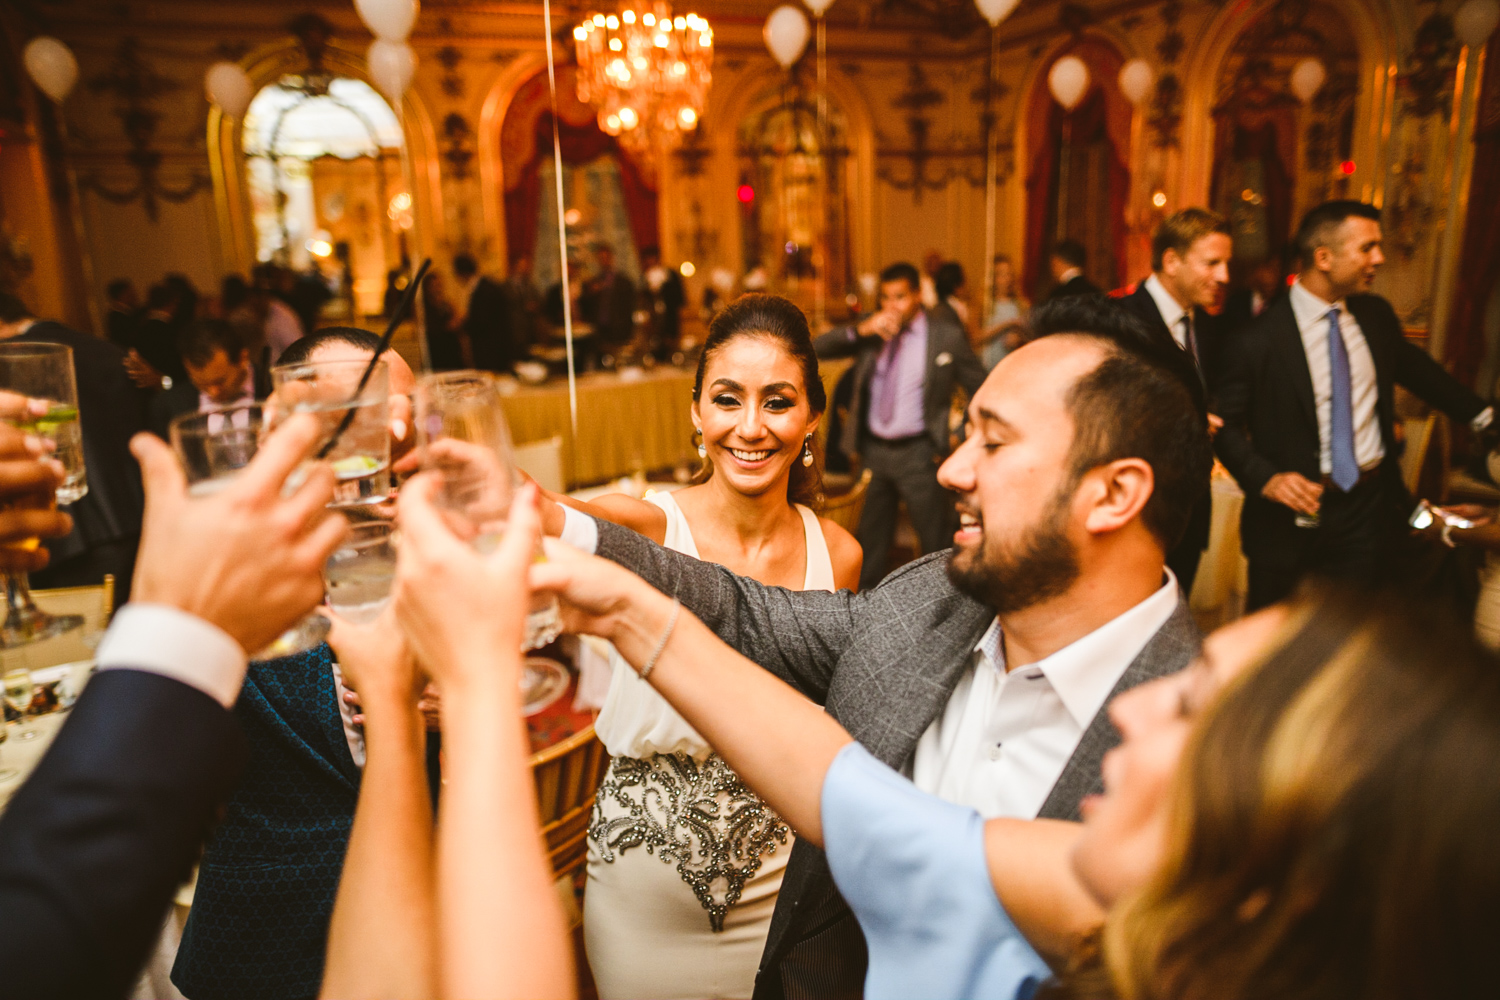 015 toasts and cheers at a washington dc engagement party cosmos club.jpg